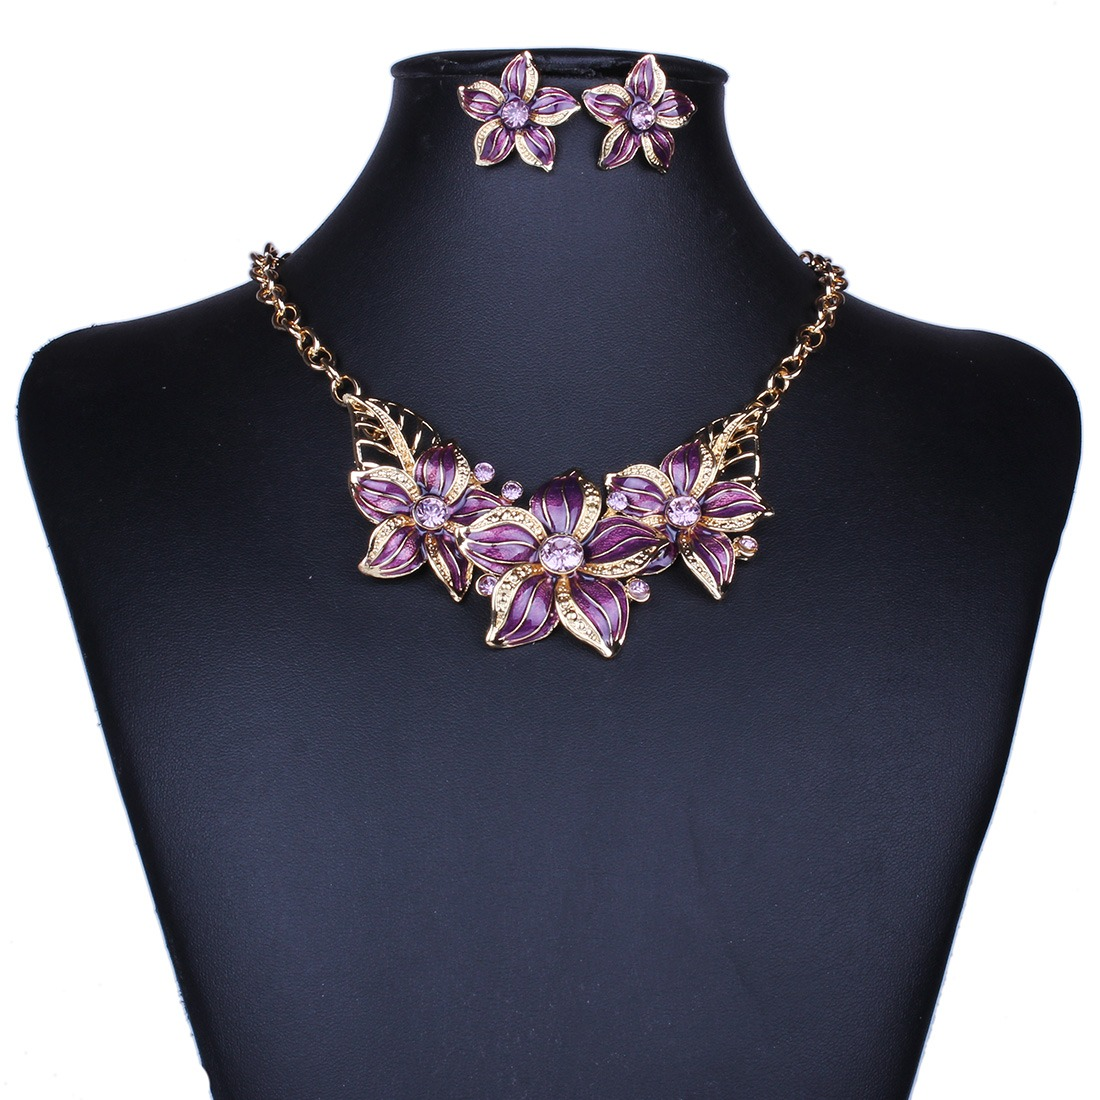 oil drop rhinestone crystal flower statement collar necklace earring set new fas